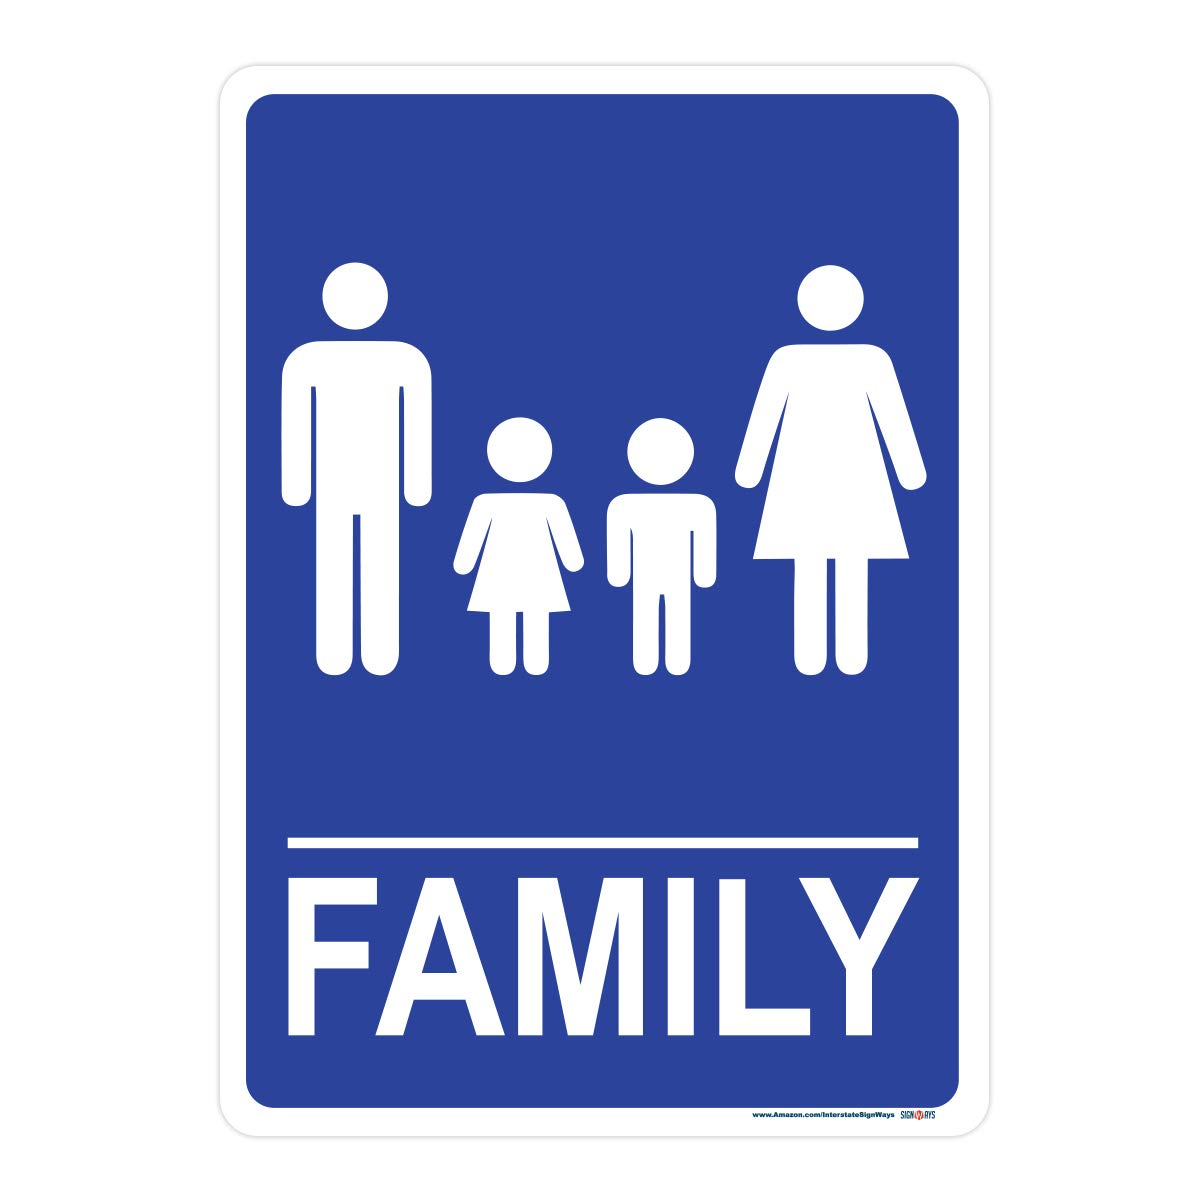 Miraculous Family Bathroom Sign Includes Holes 3M Quality Reflective Download Free Architecture Designs Xaembritishbridgeorg